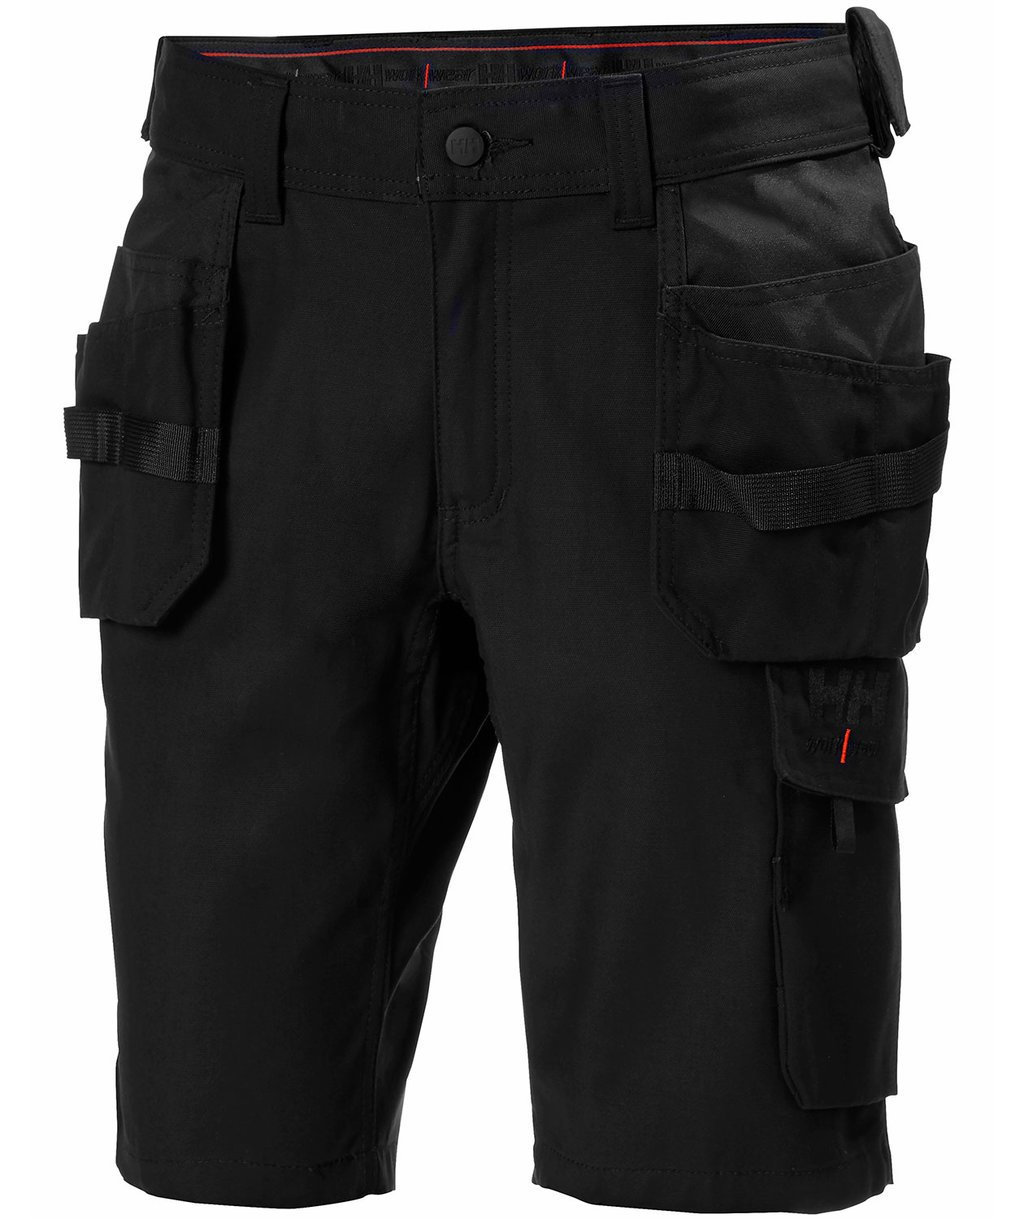 Helly Hansen WW Oxford håndværkershorts, Sort